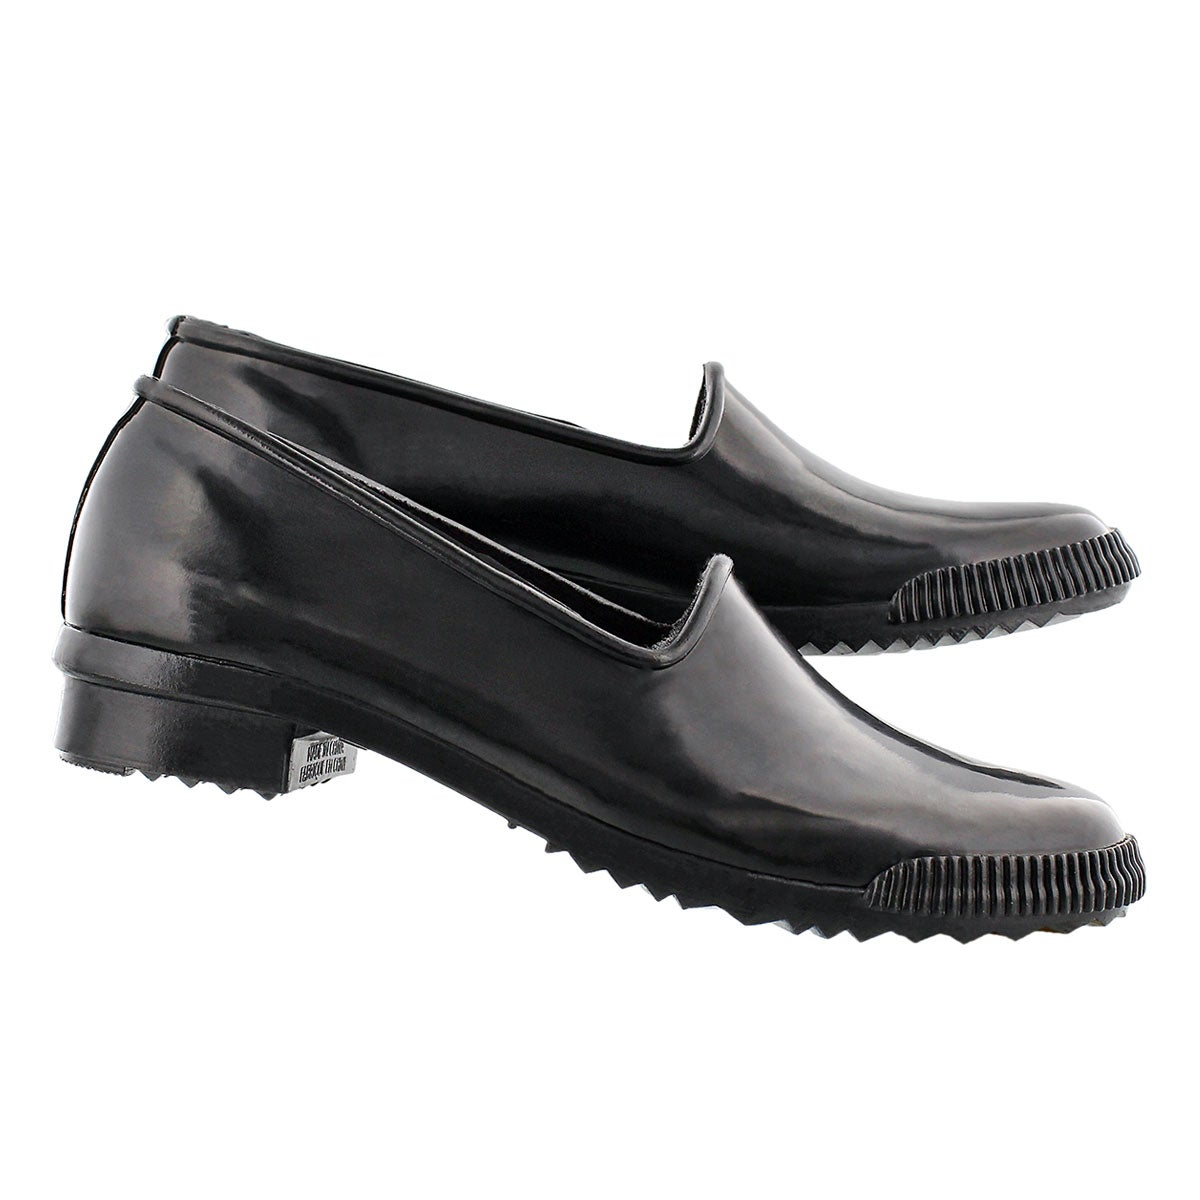 Lds Ruby blk gloss rubber loafer